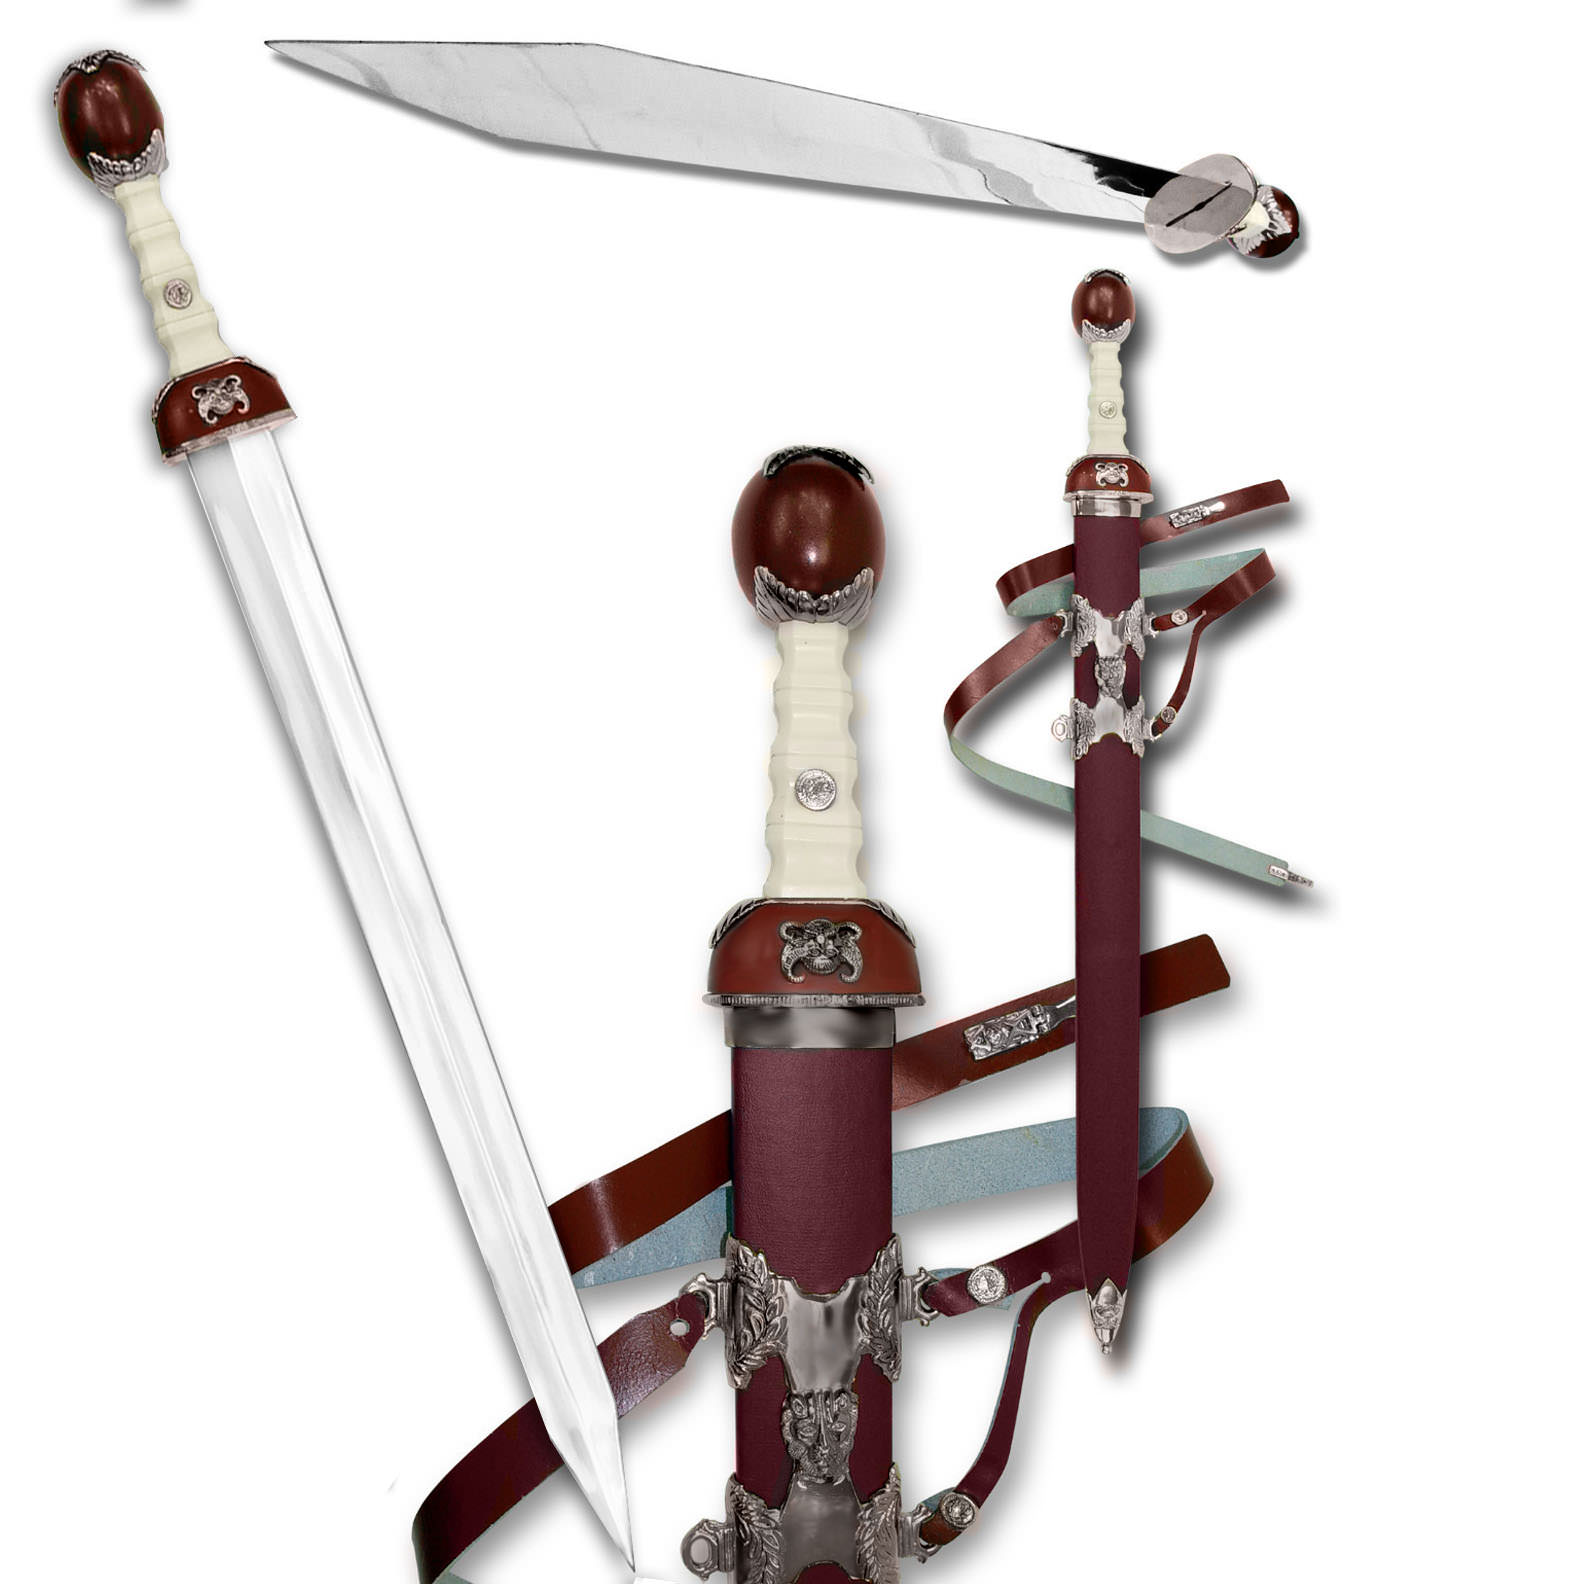 Burgundy Gladiator Sword 39""